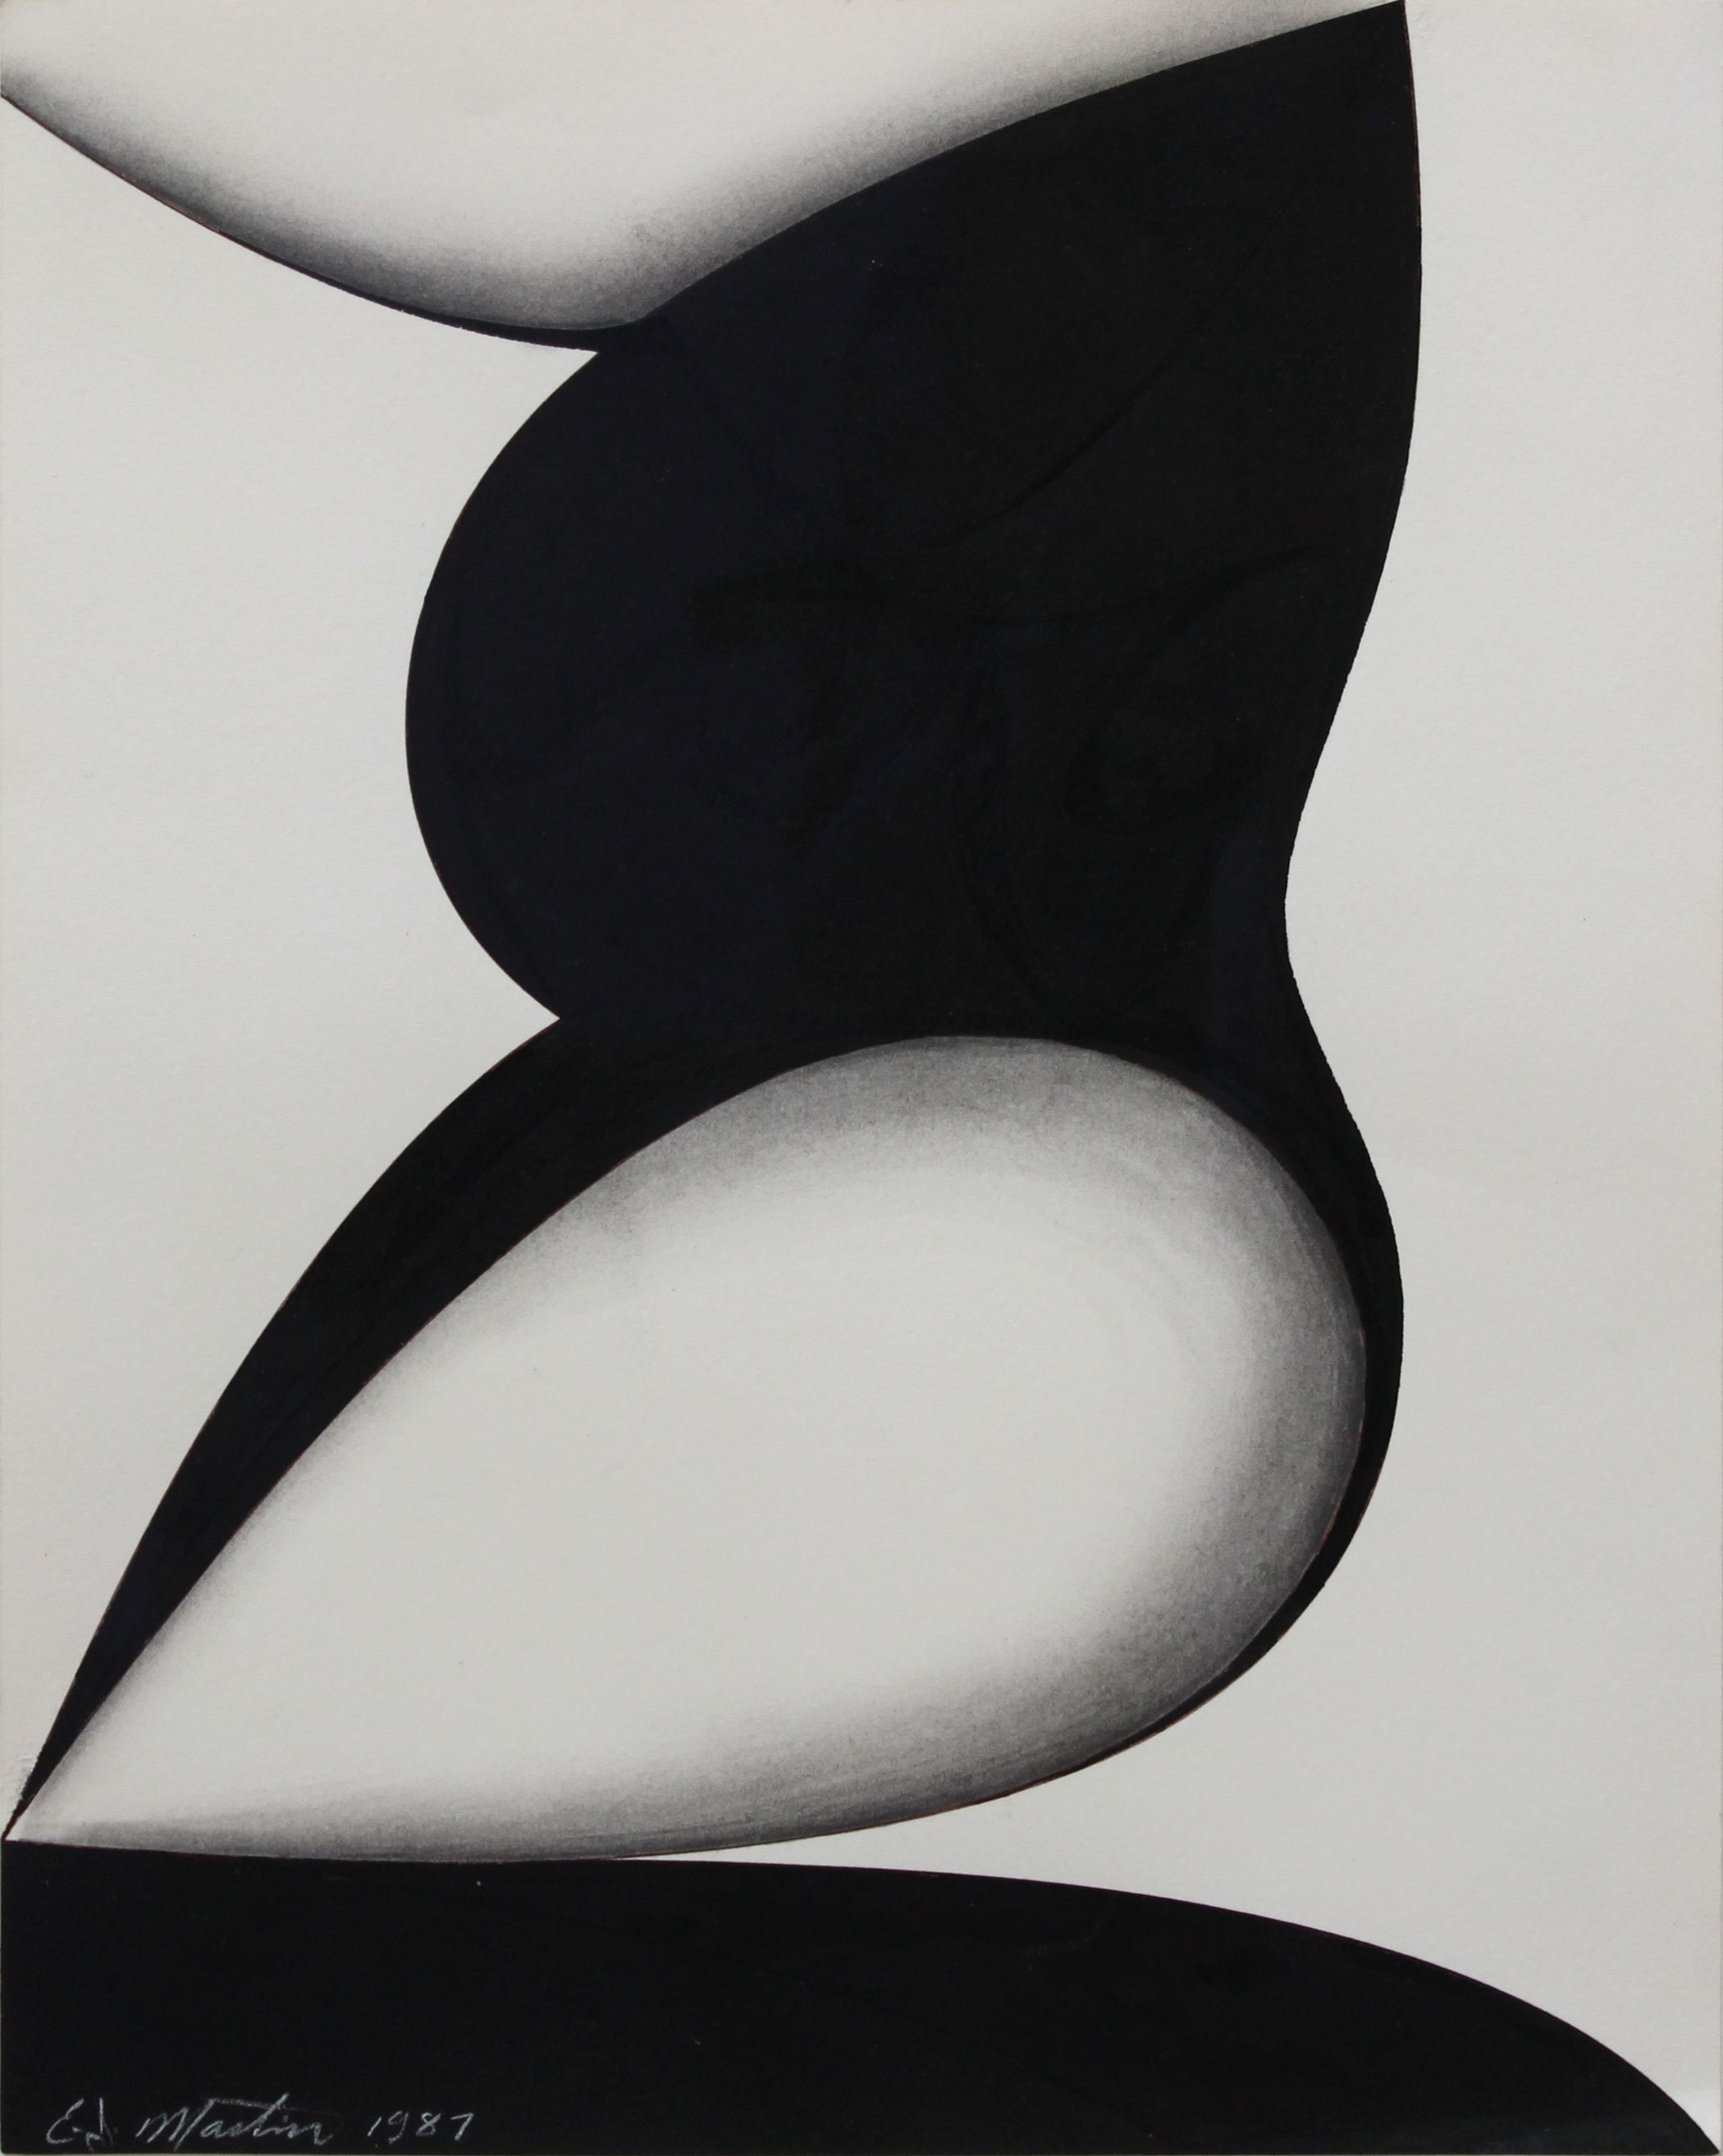 Untitled , 1987 pen, ink and graphite 13 3/4 x 10 5/8 inches; 34.9 x 27 centimeters